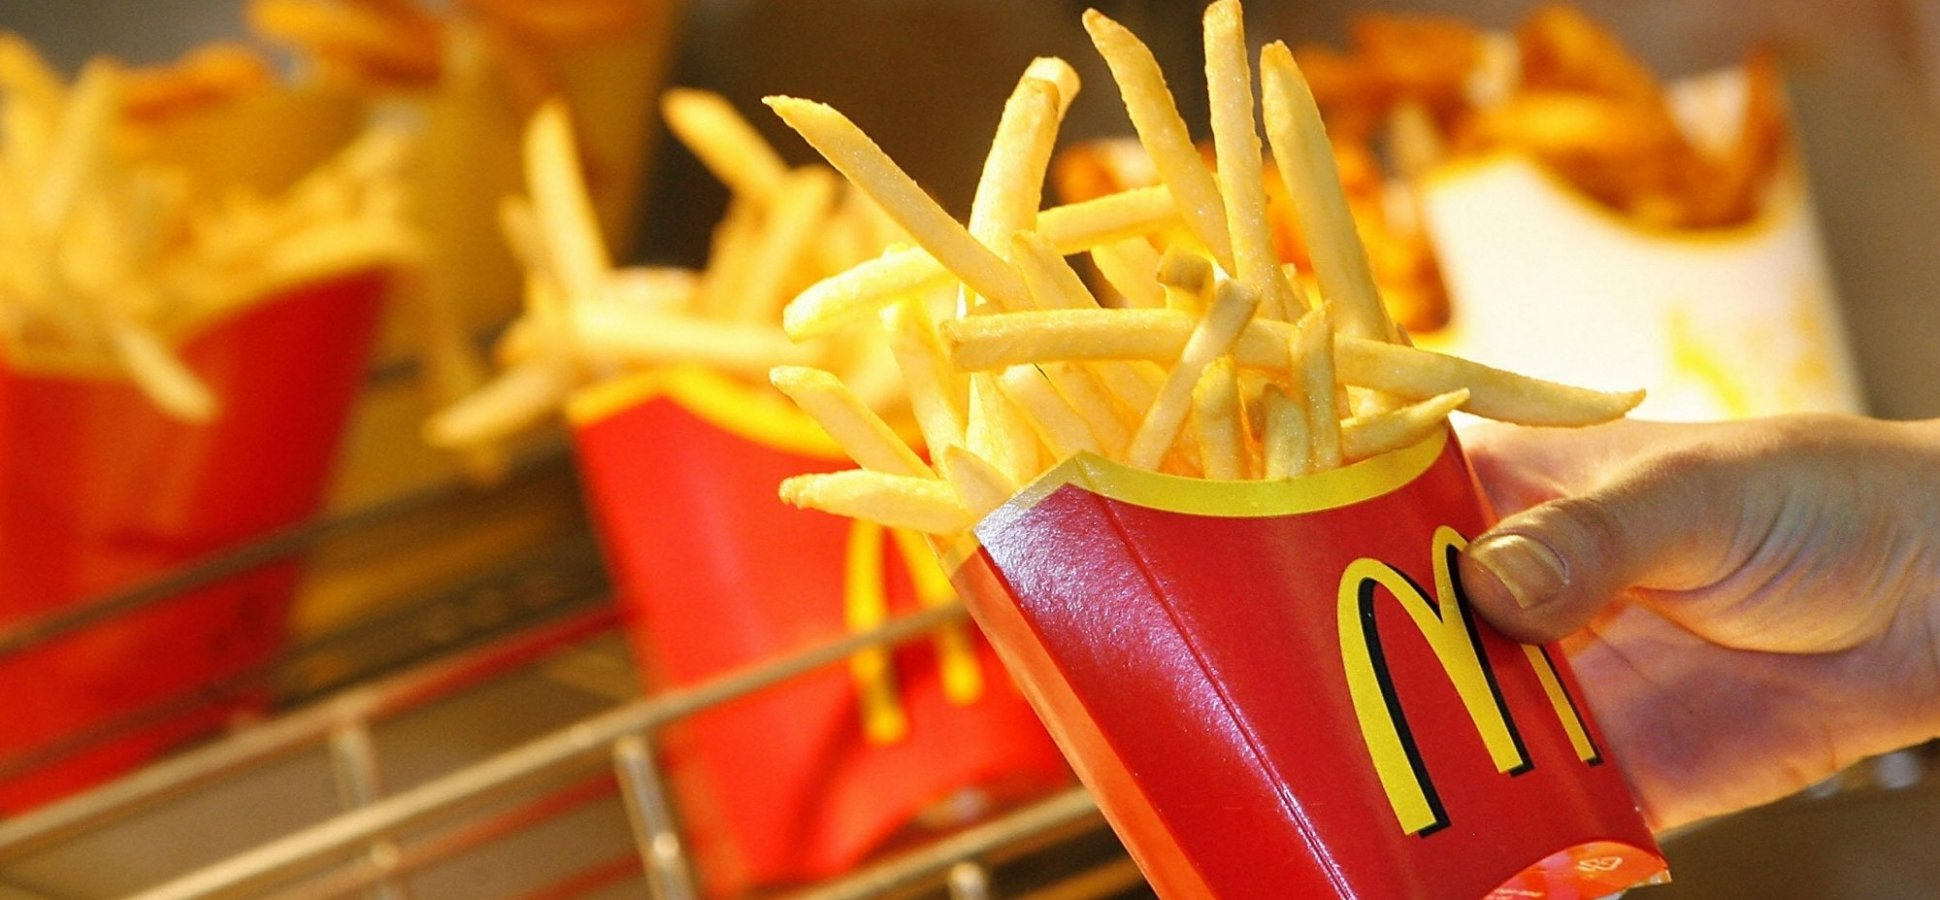 Heres Why Mcdonalds Will Give You Free Fries Every Friday In 2018